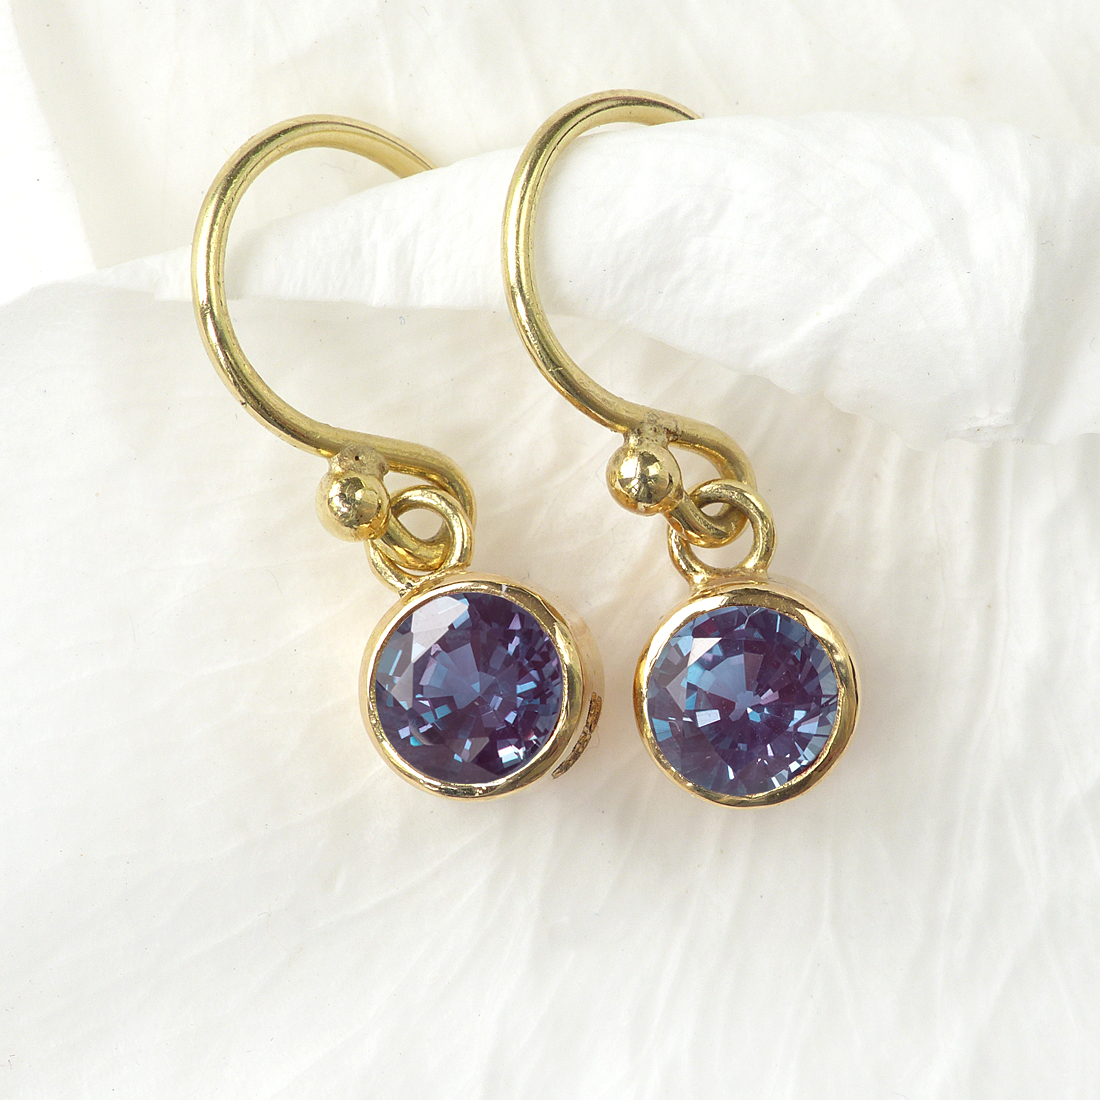 Alexandrite Earrings In 18ct Gold